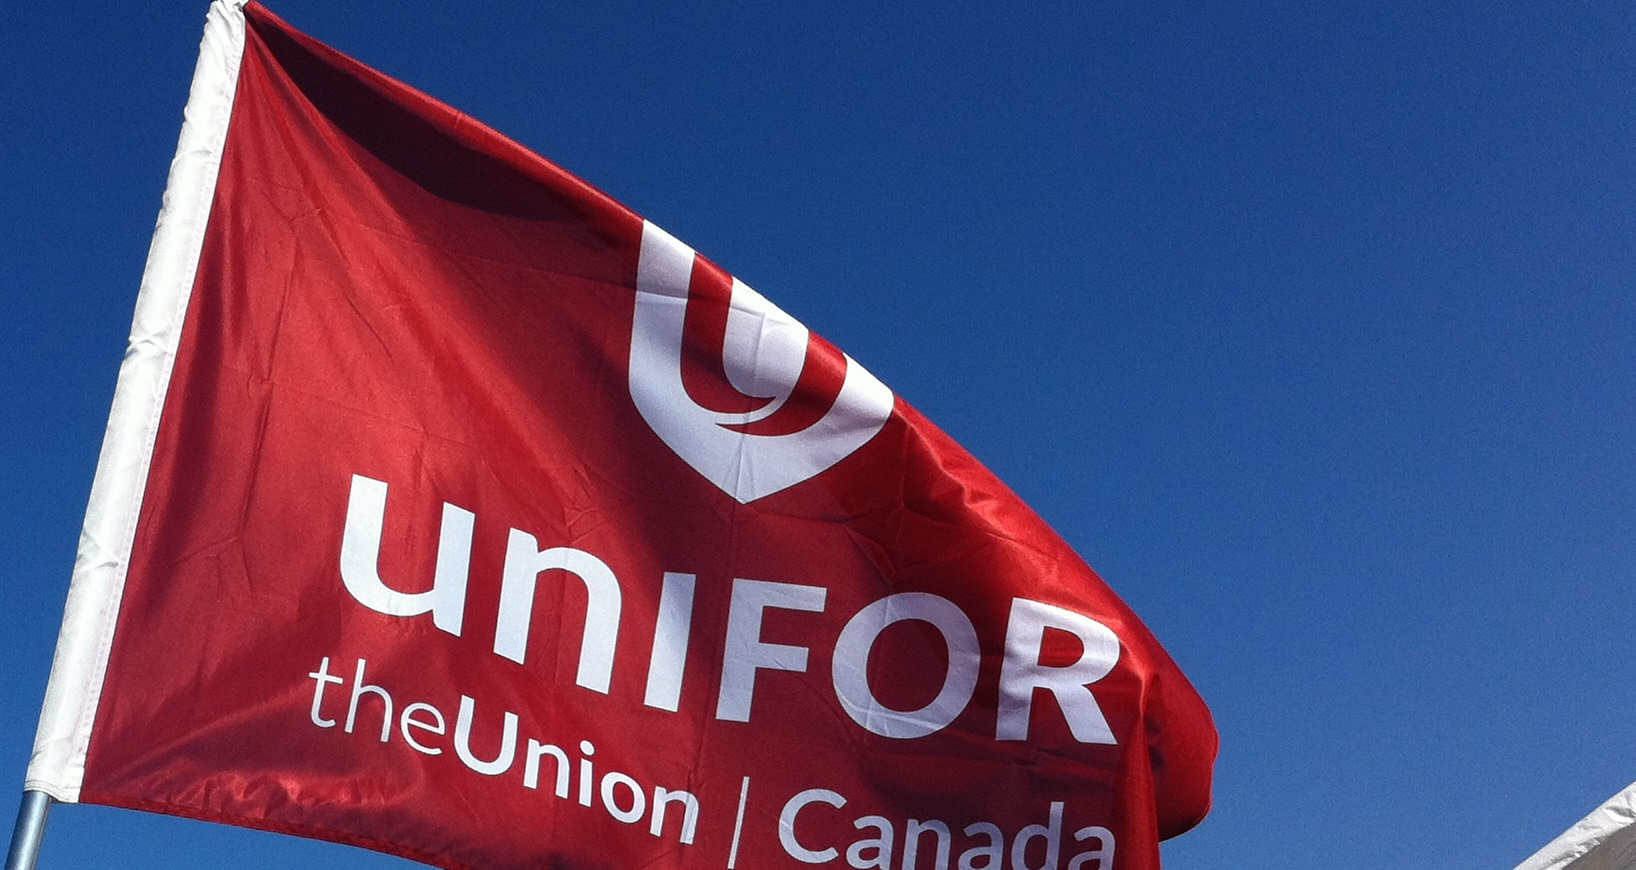 Unifor Confirms More Jobs At 2 NWO Sawmills